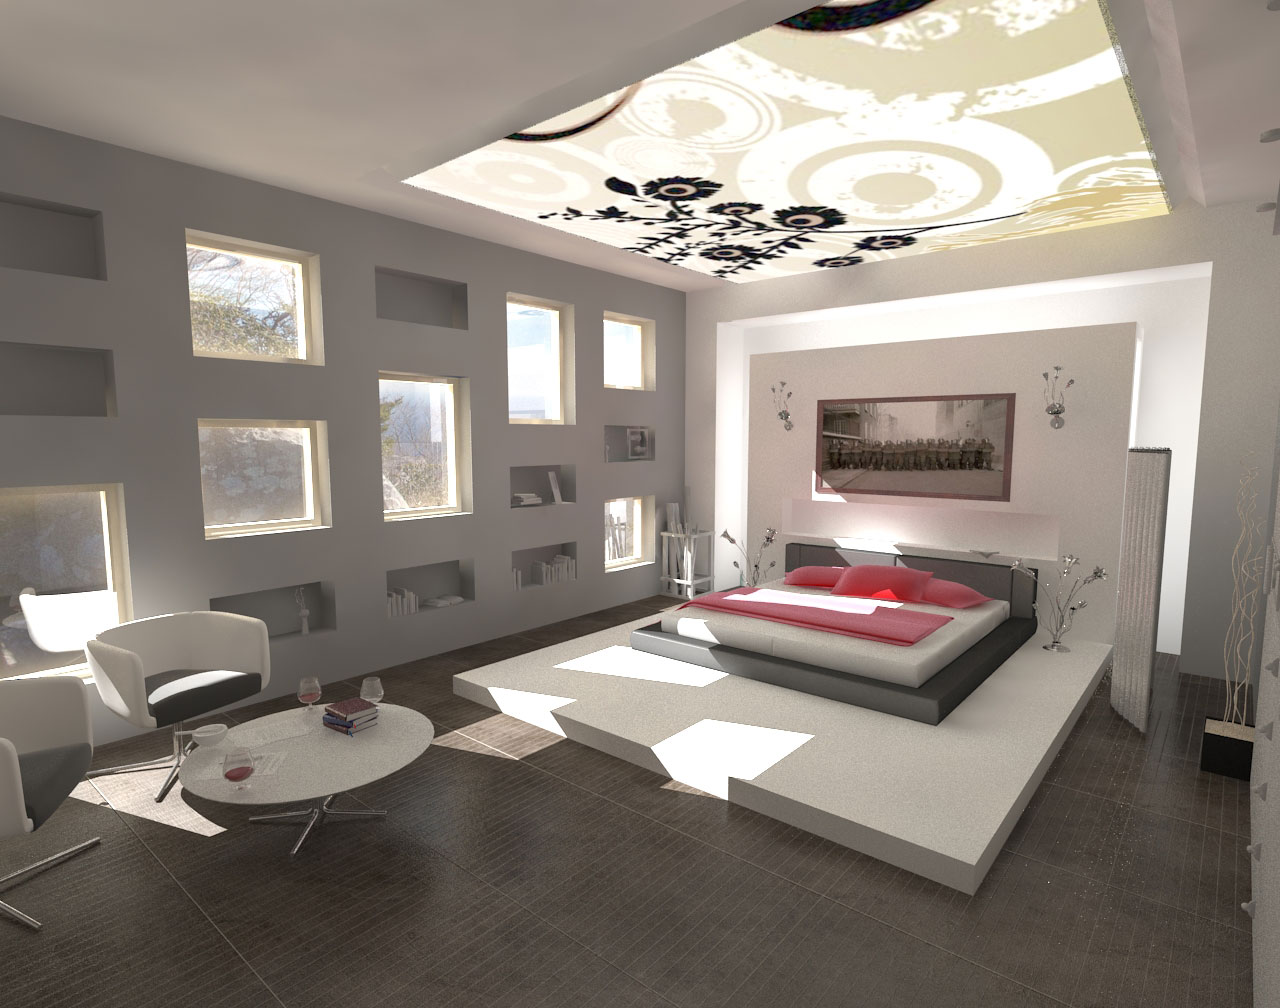 Modern Minimalis Interior Bedroom Design : Decorations: Minimalist Design - Modern Bedroom Interior Design Ideas